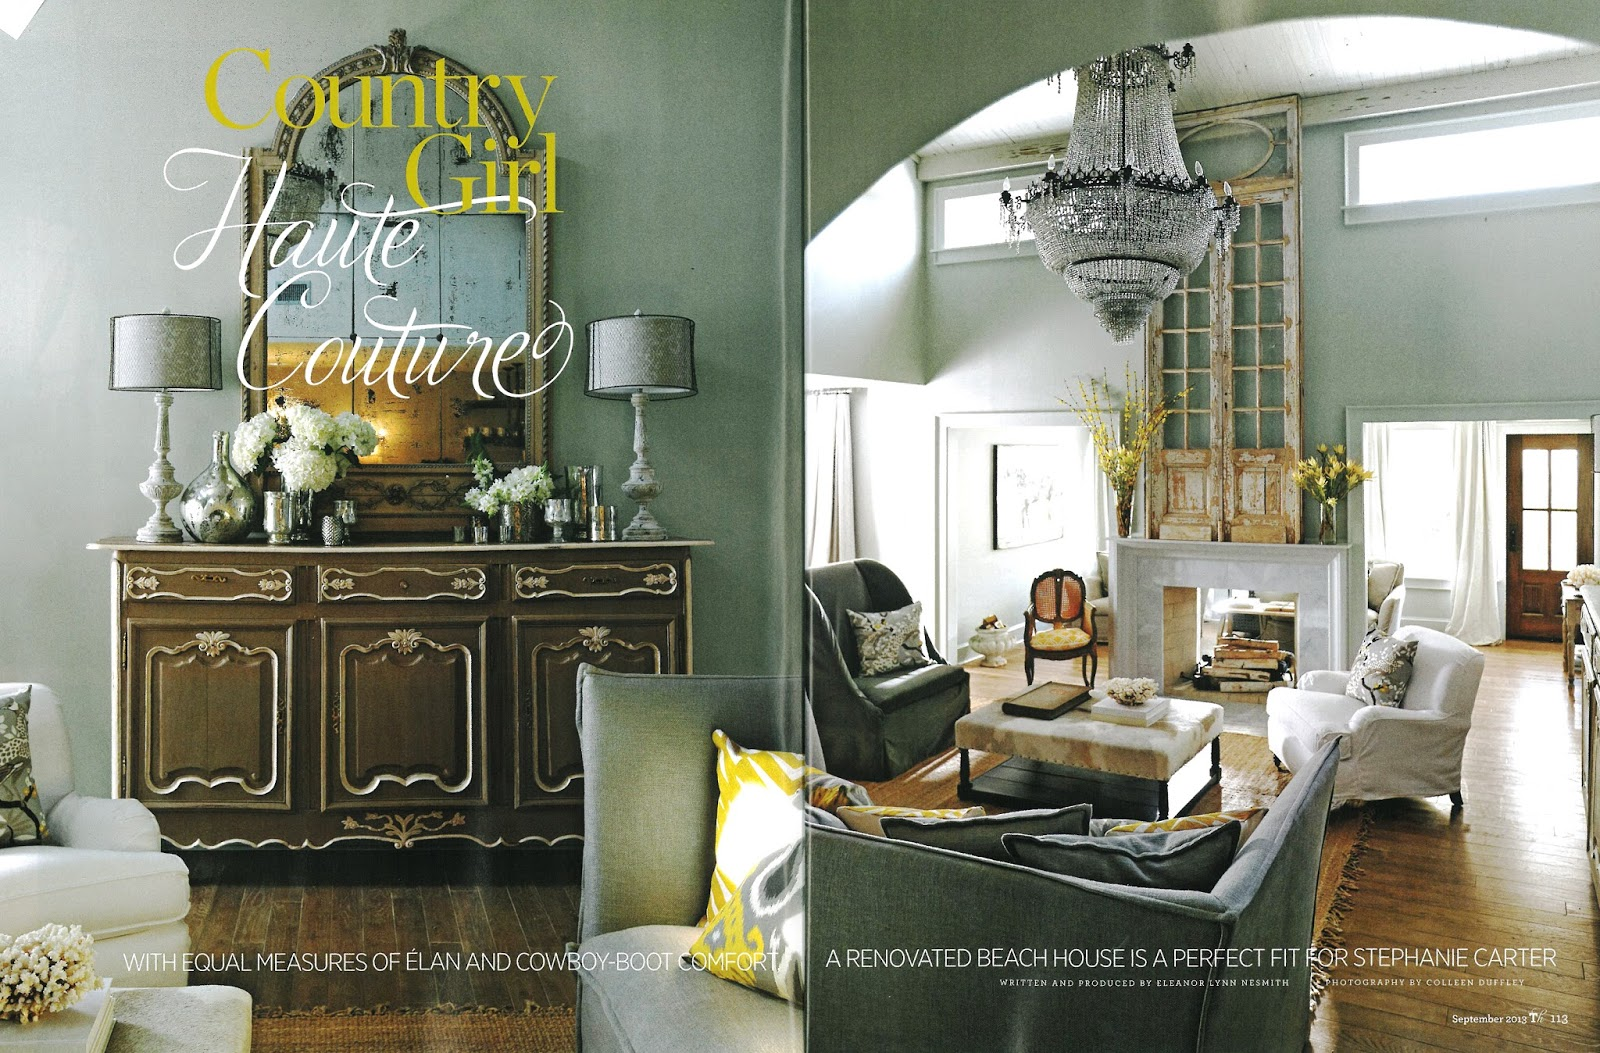 judith march: traditional homes magazine features designer